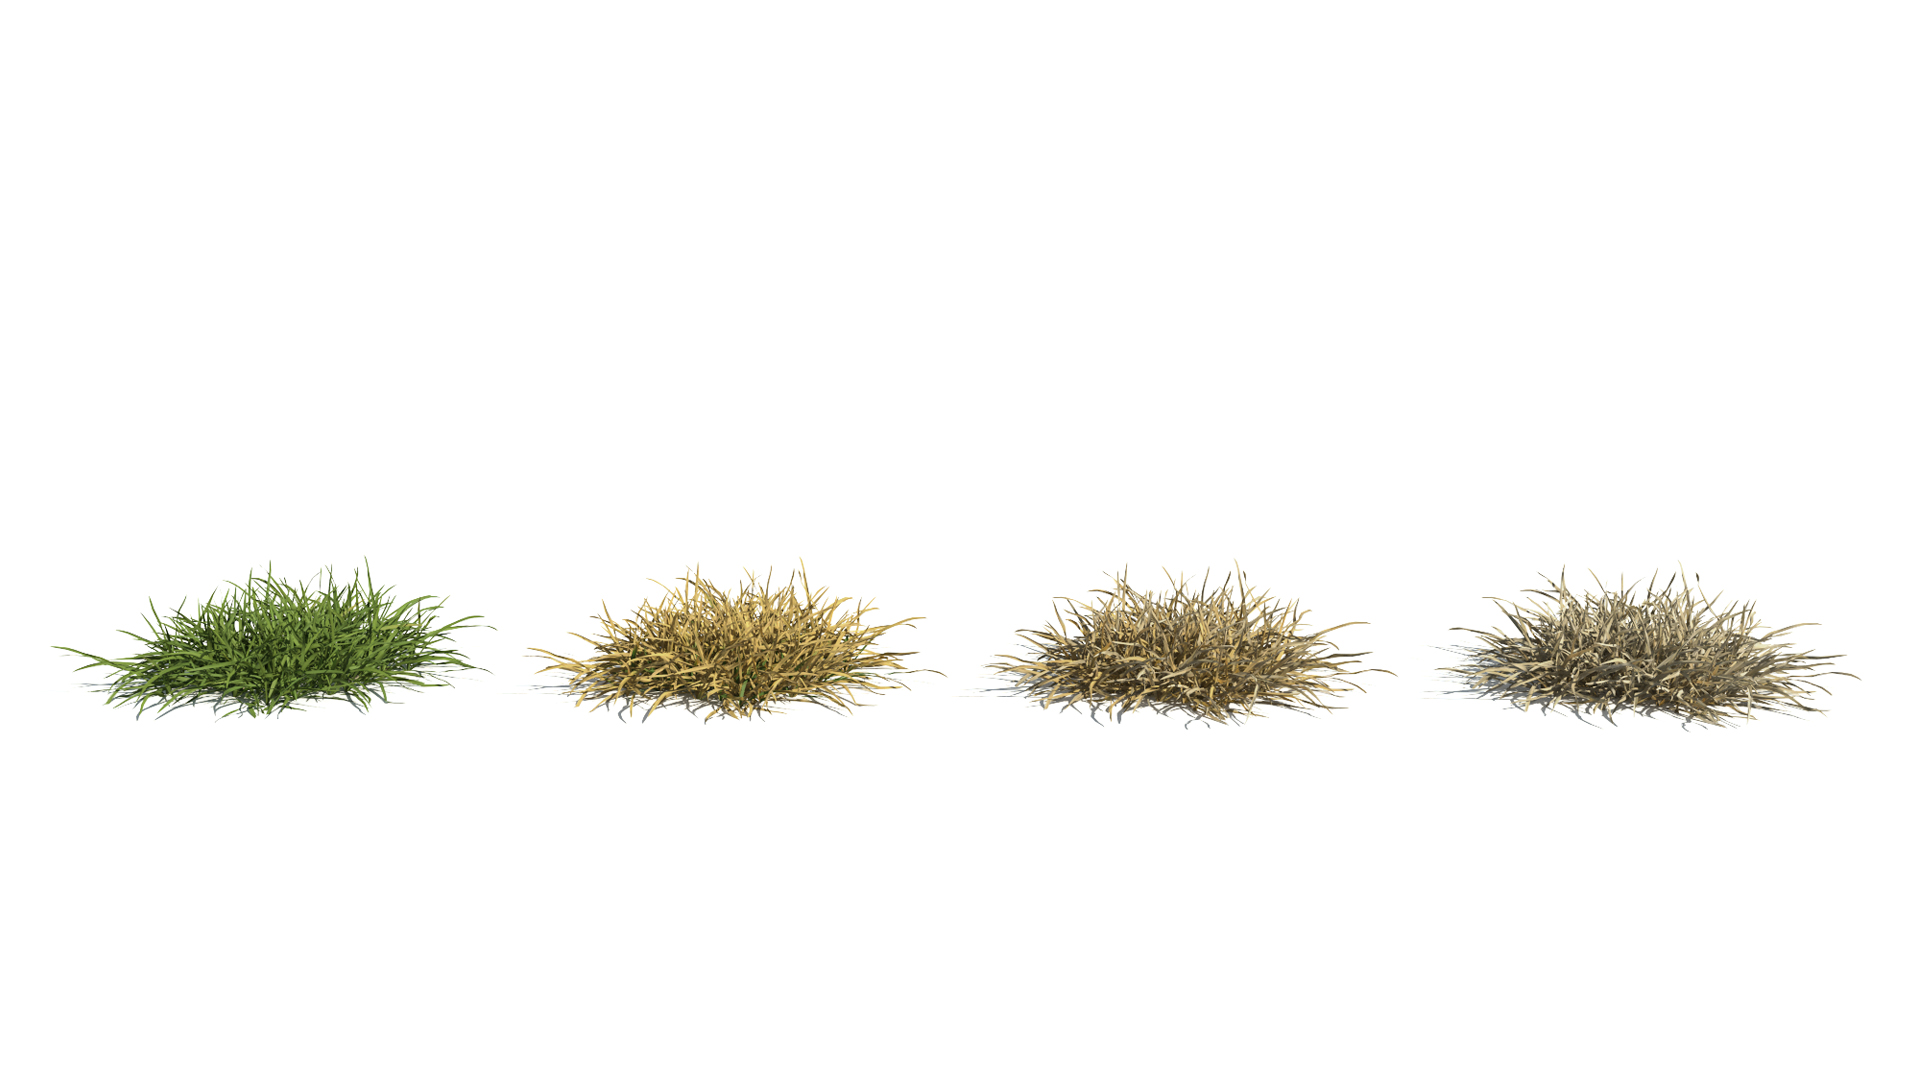 3D model of the Generic grass and lawn engine Generic grass lawn health variations